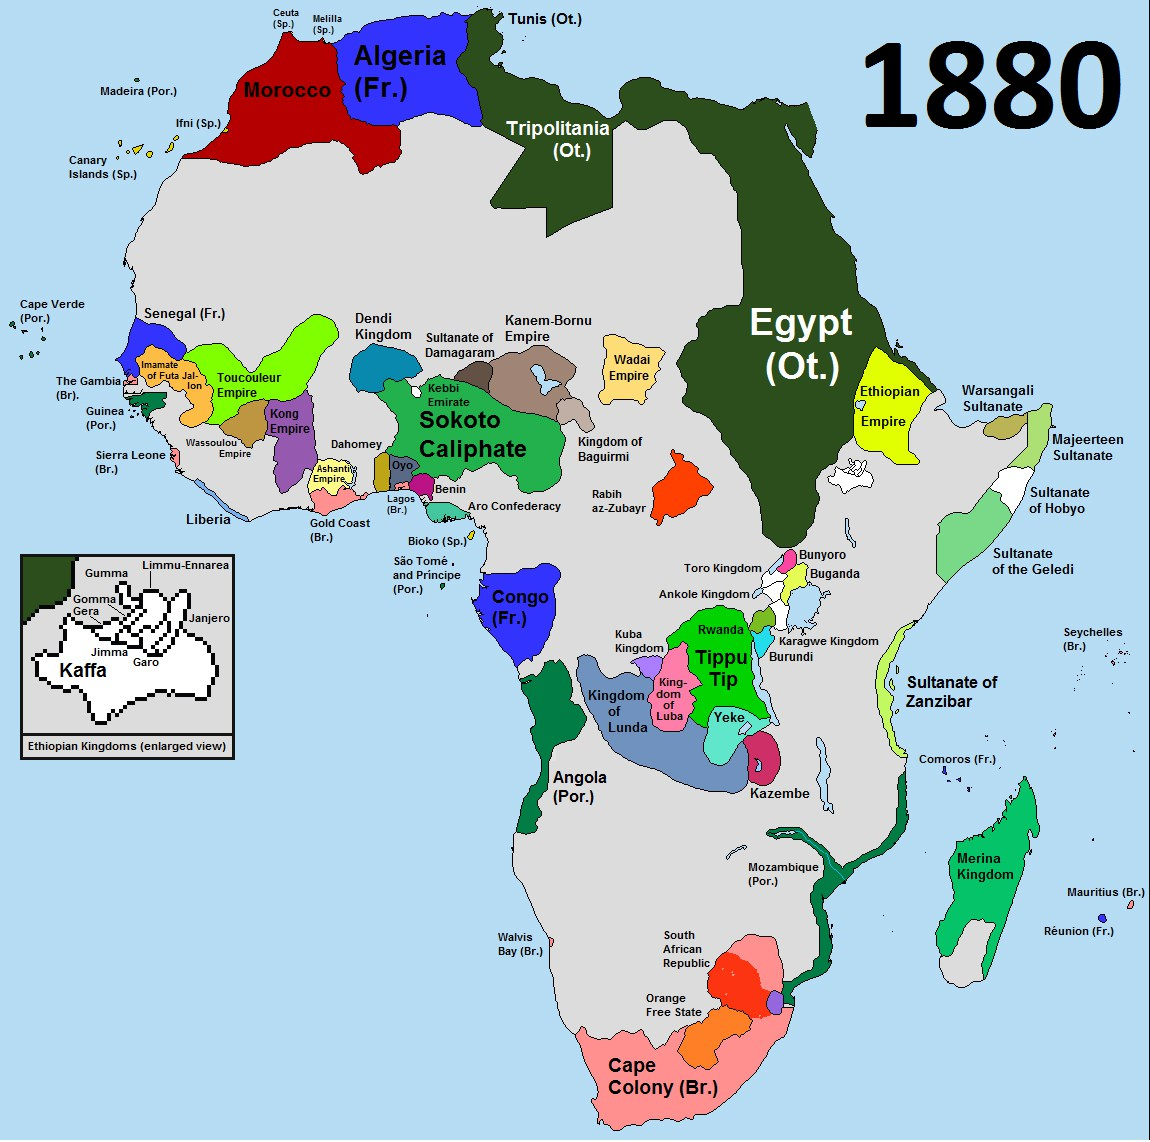 Newsela expansion was everything europes colonization of africa africa in 1880 before the scramble for africa click to enlarge gumiabroncs Choice Image